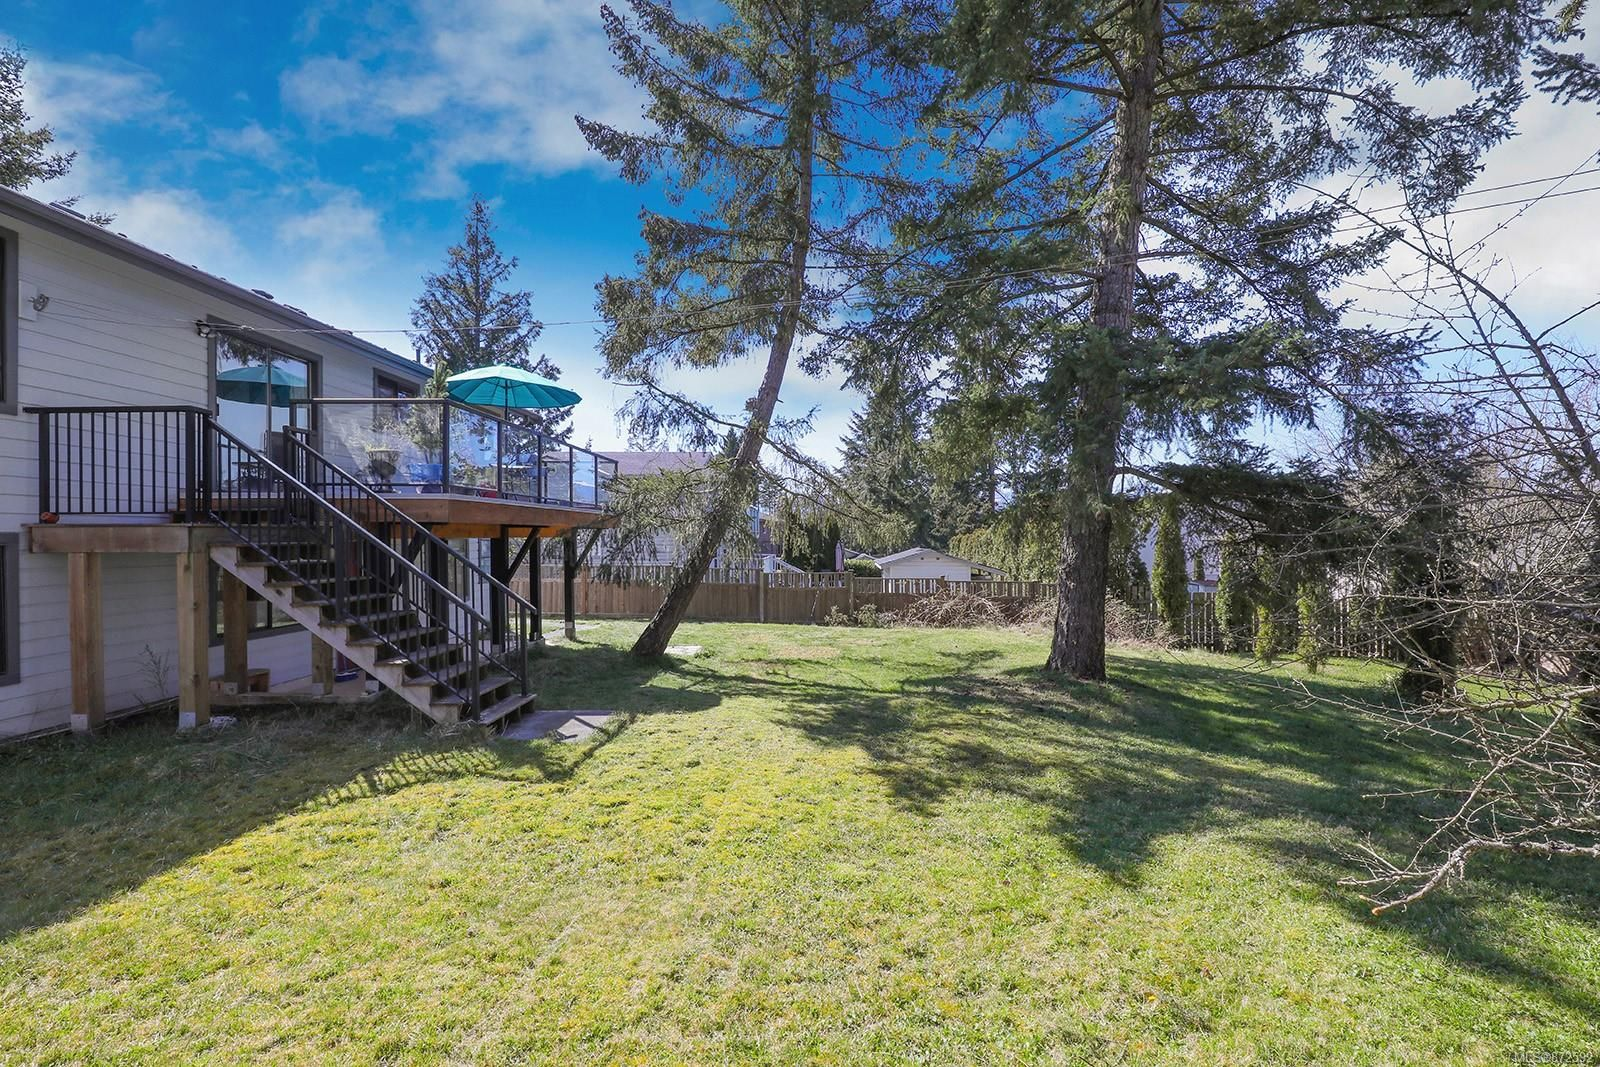 Photo 31: Photos: 1626 Valley Cres in : CV Courtenay East House for sale (Comox Valley)  : MLS®# 872592